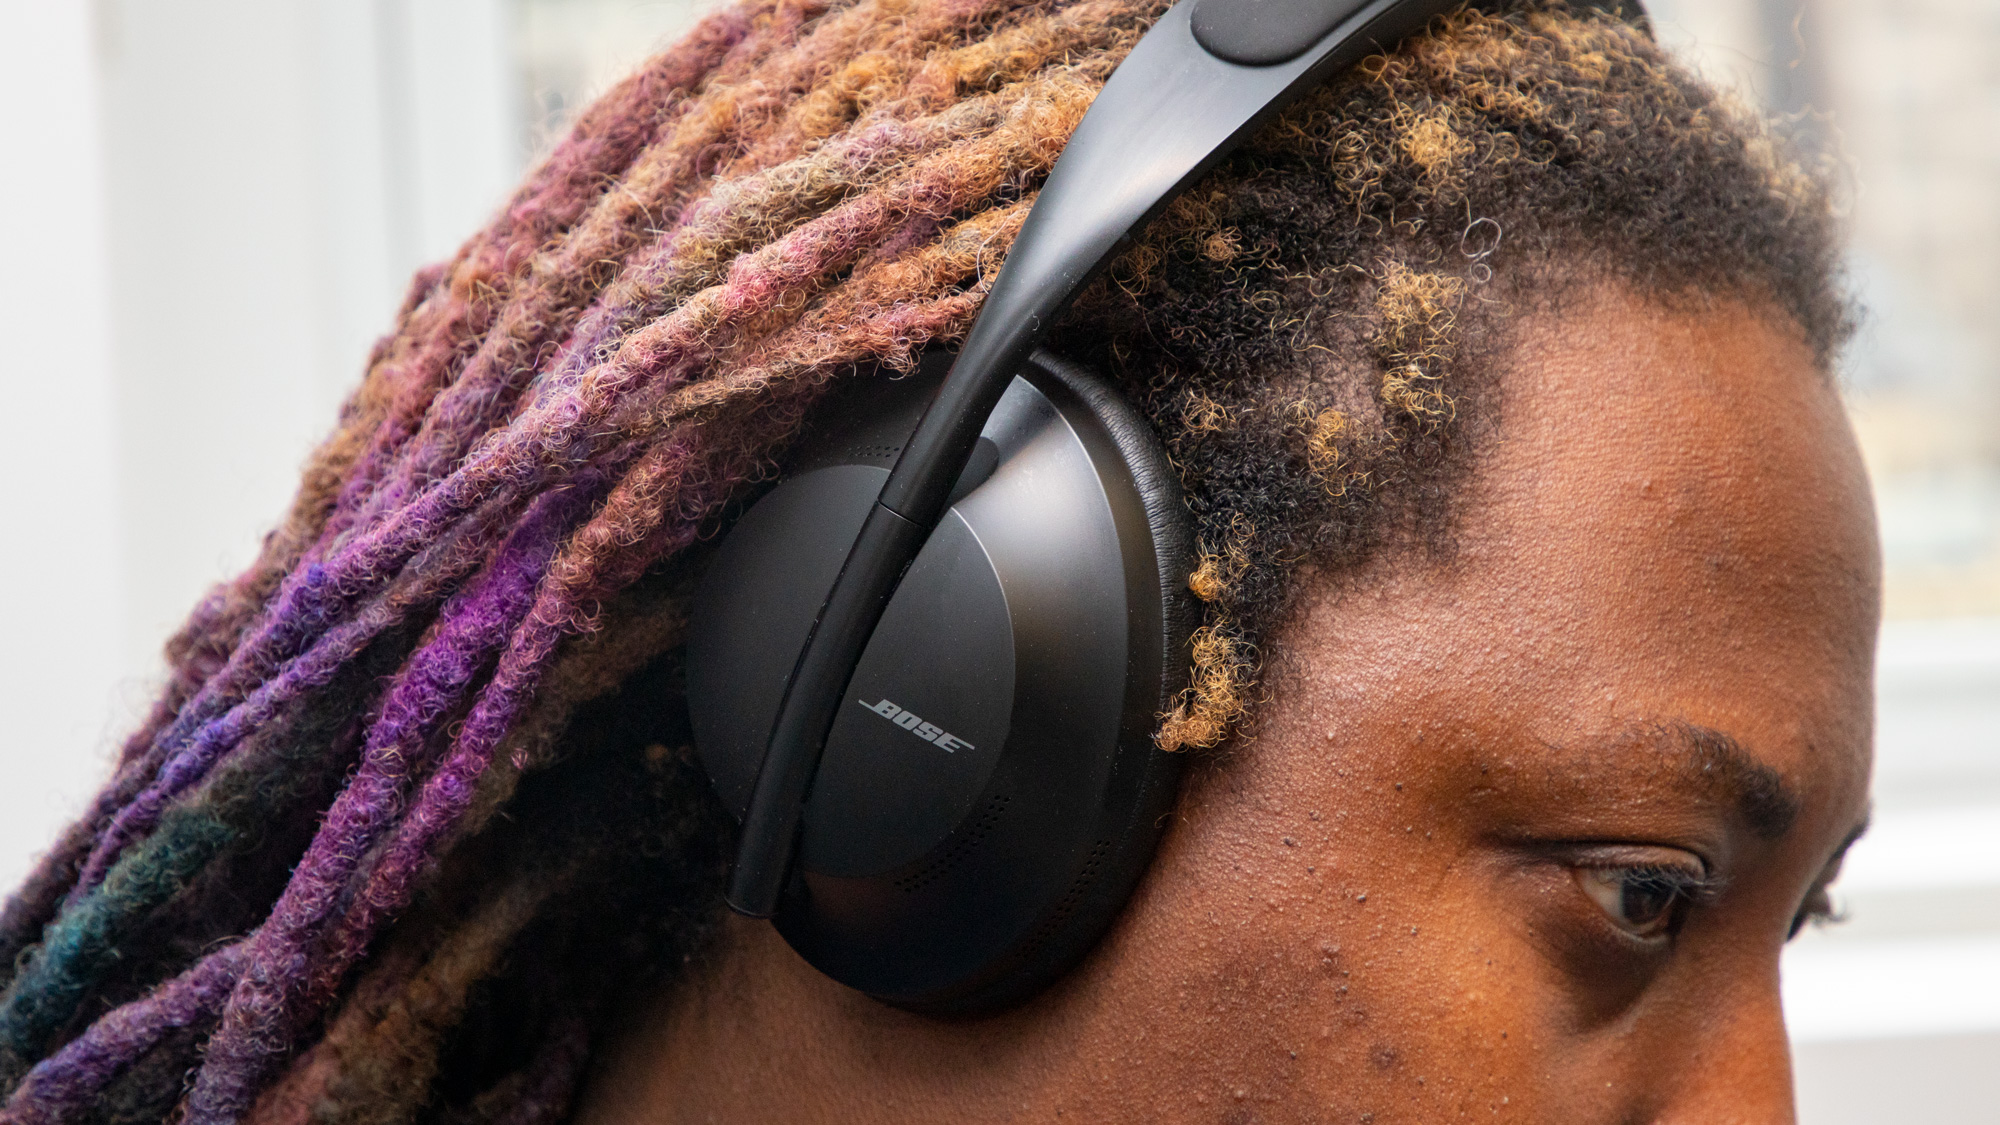 Bose 700 Review: The New Noise-Cancelling King | Tom's Guide